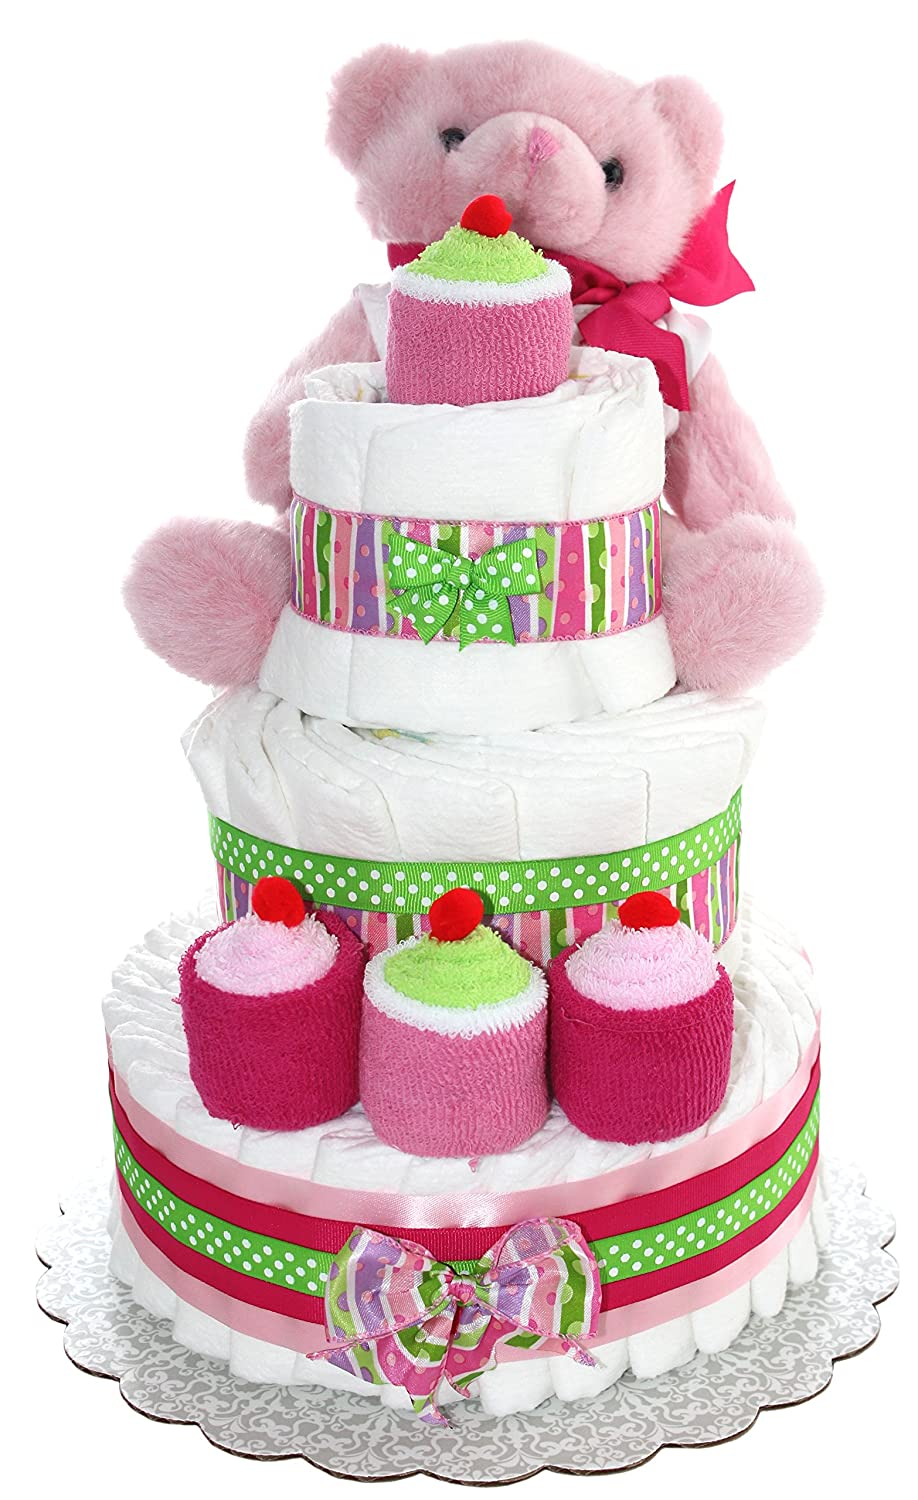 3 Tier Diaper Cake - Blue Teddy Bear Diaper Cake For Boy - Baby Gift For Baby Shower - Teddy Bear Theme - Diaper Cake Is Decorated With Cupcakes Made Out Of Newborn Socks And Washcloths (Blue) QBabyShowering